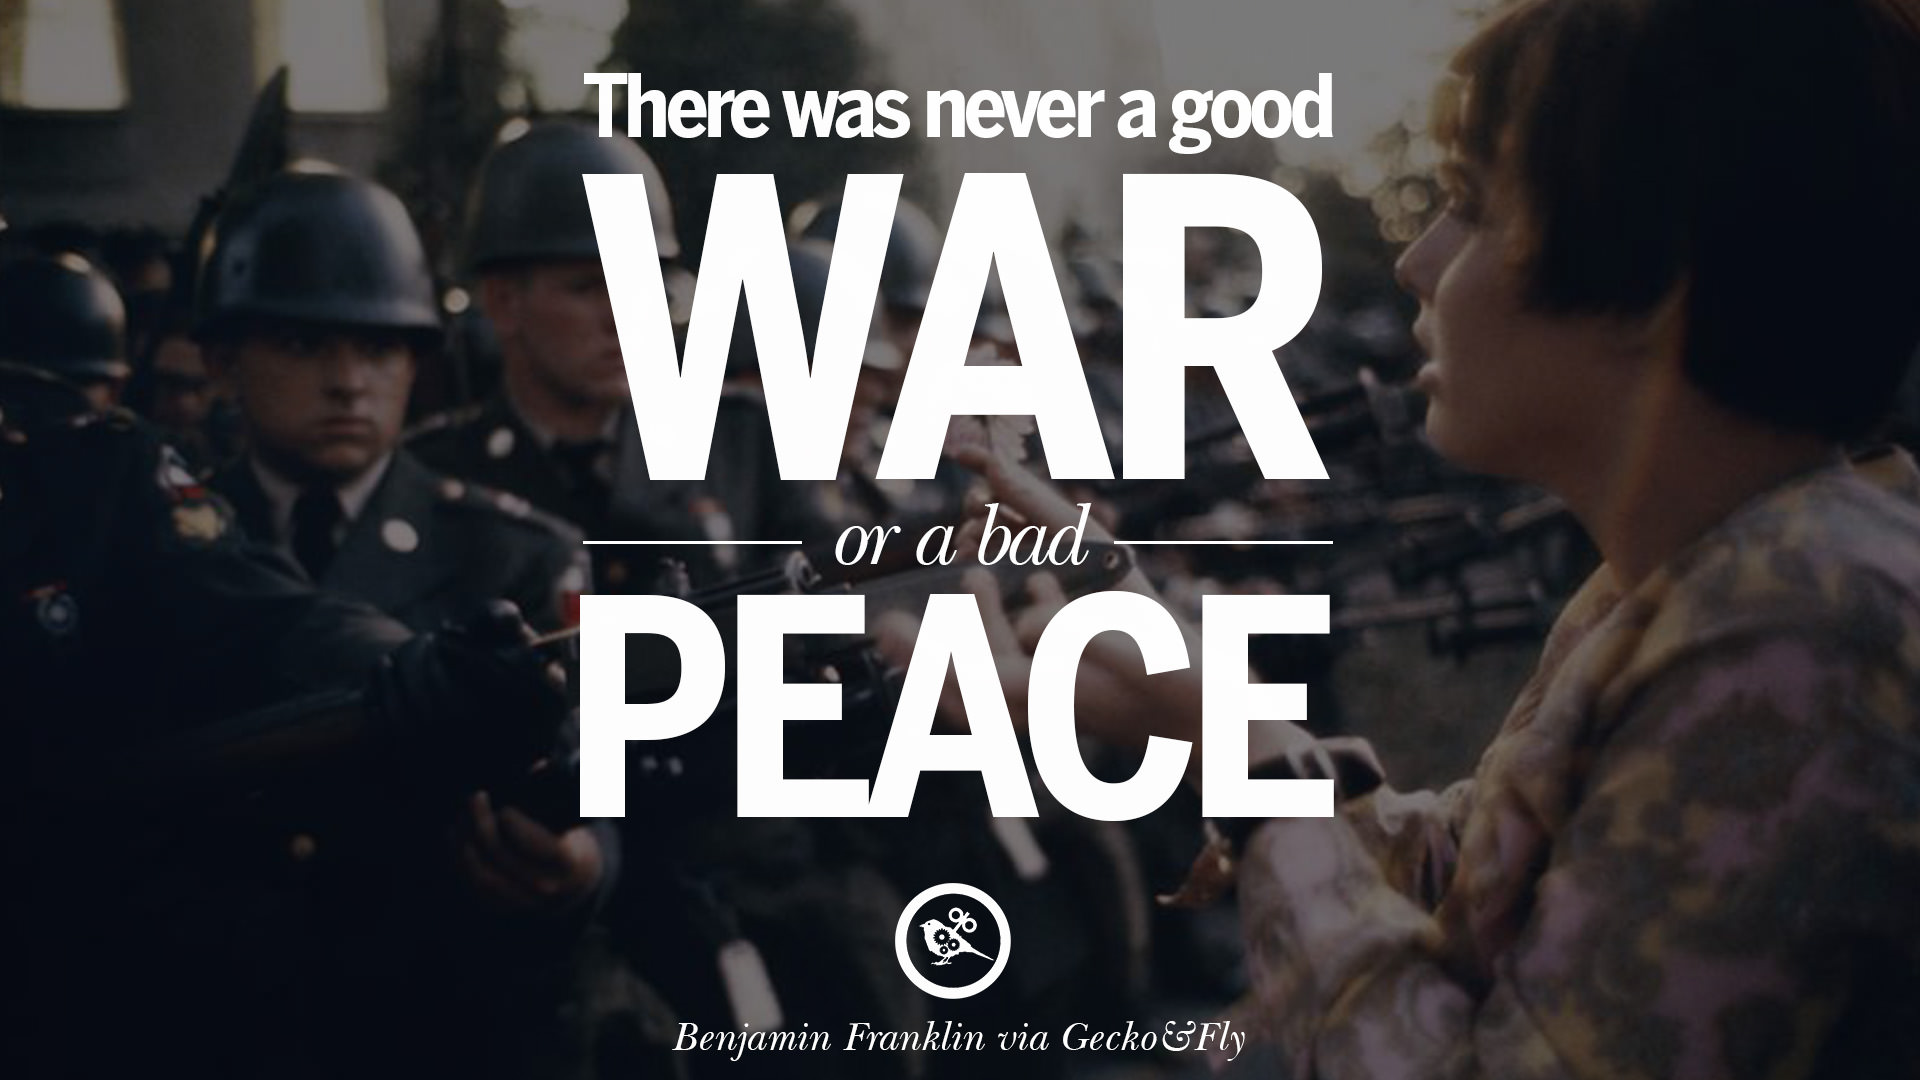 10 Famous Quotes About War On World Peace, Death, Violence